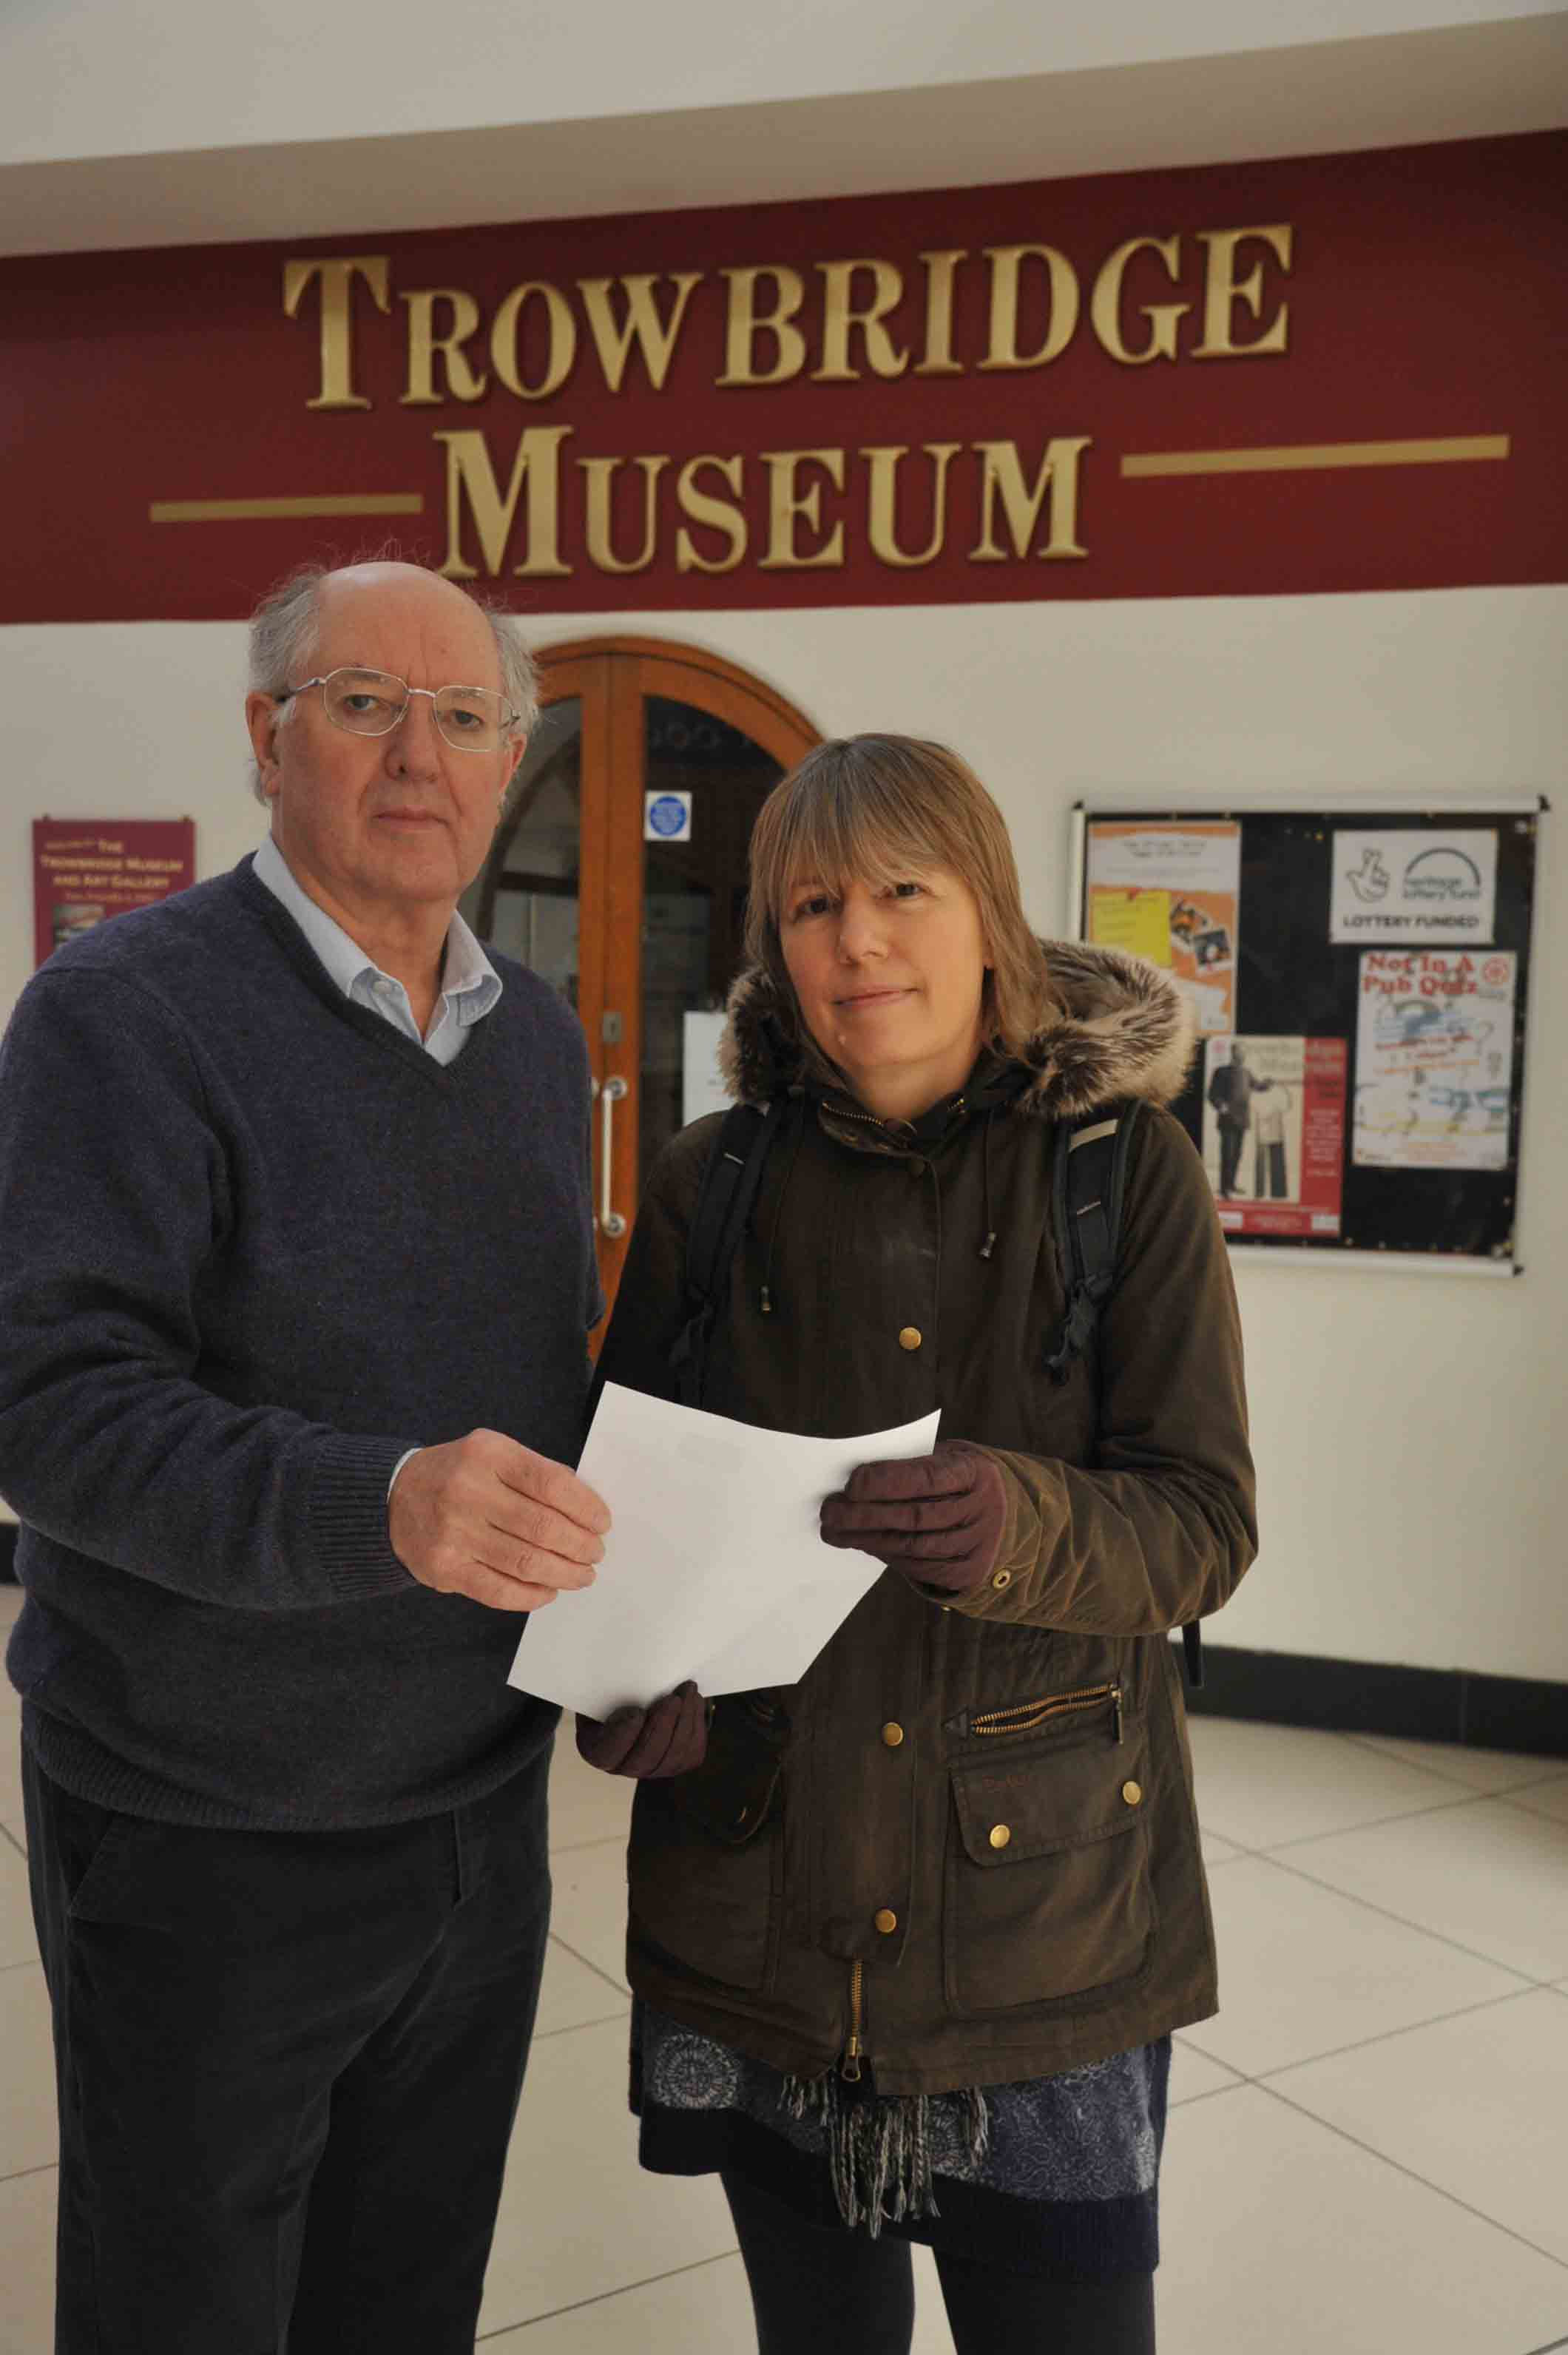 Trowbridge Museum funding cut sparks outrage